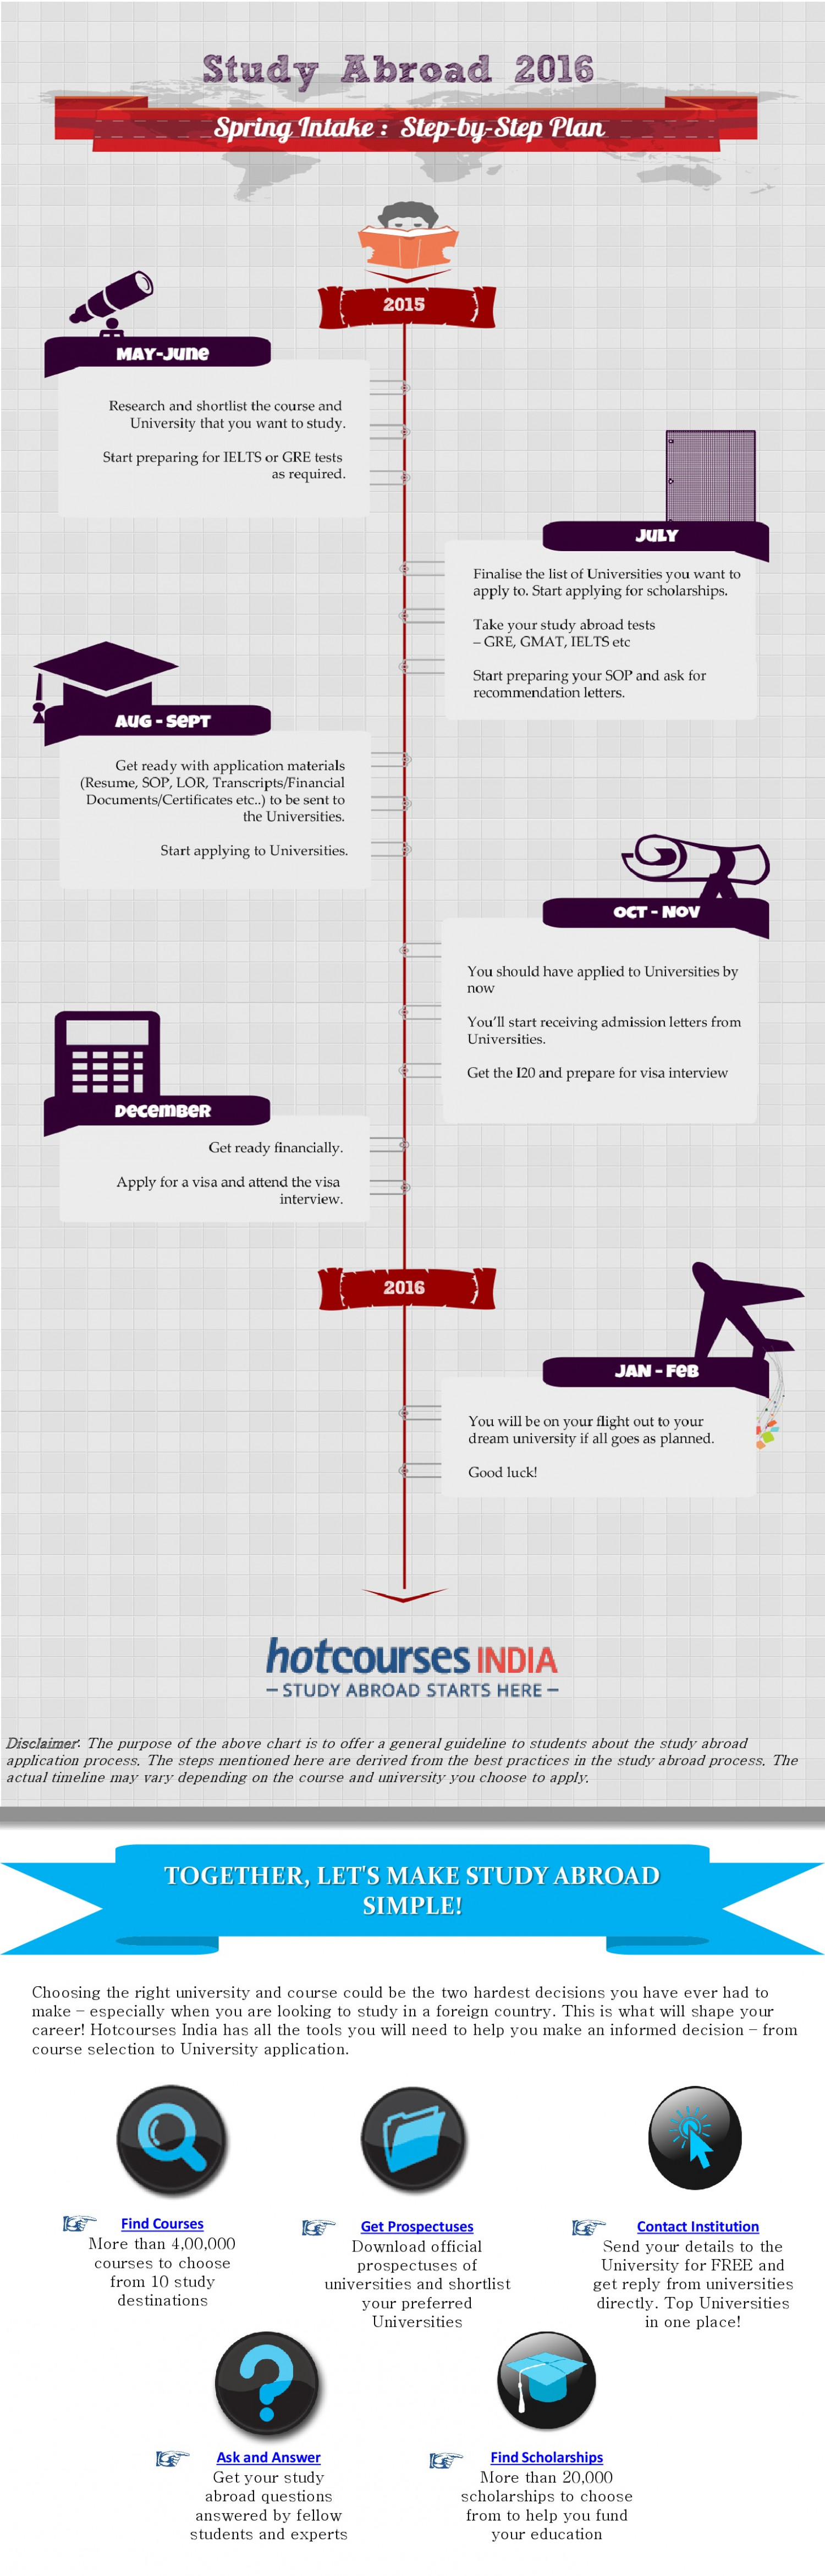 step by step plan for studying abroad spring intake ly step by step plan for studying abroad spring intake 2016 infographic